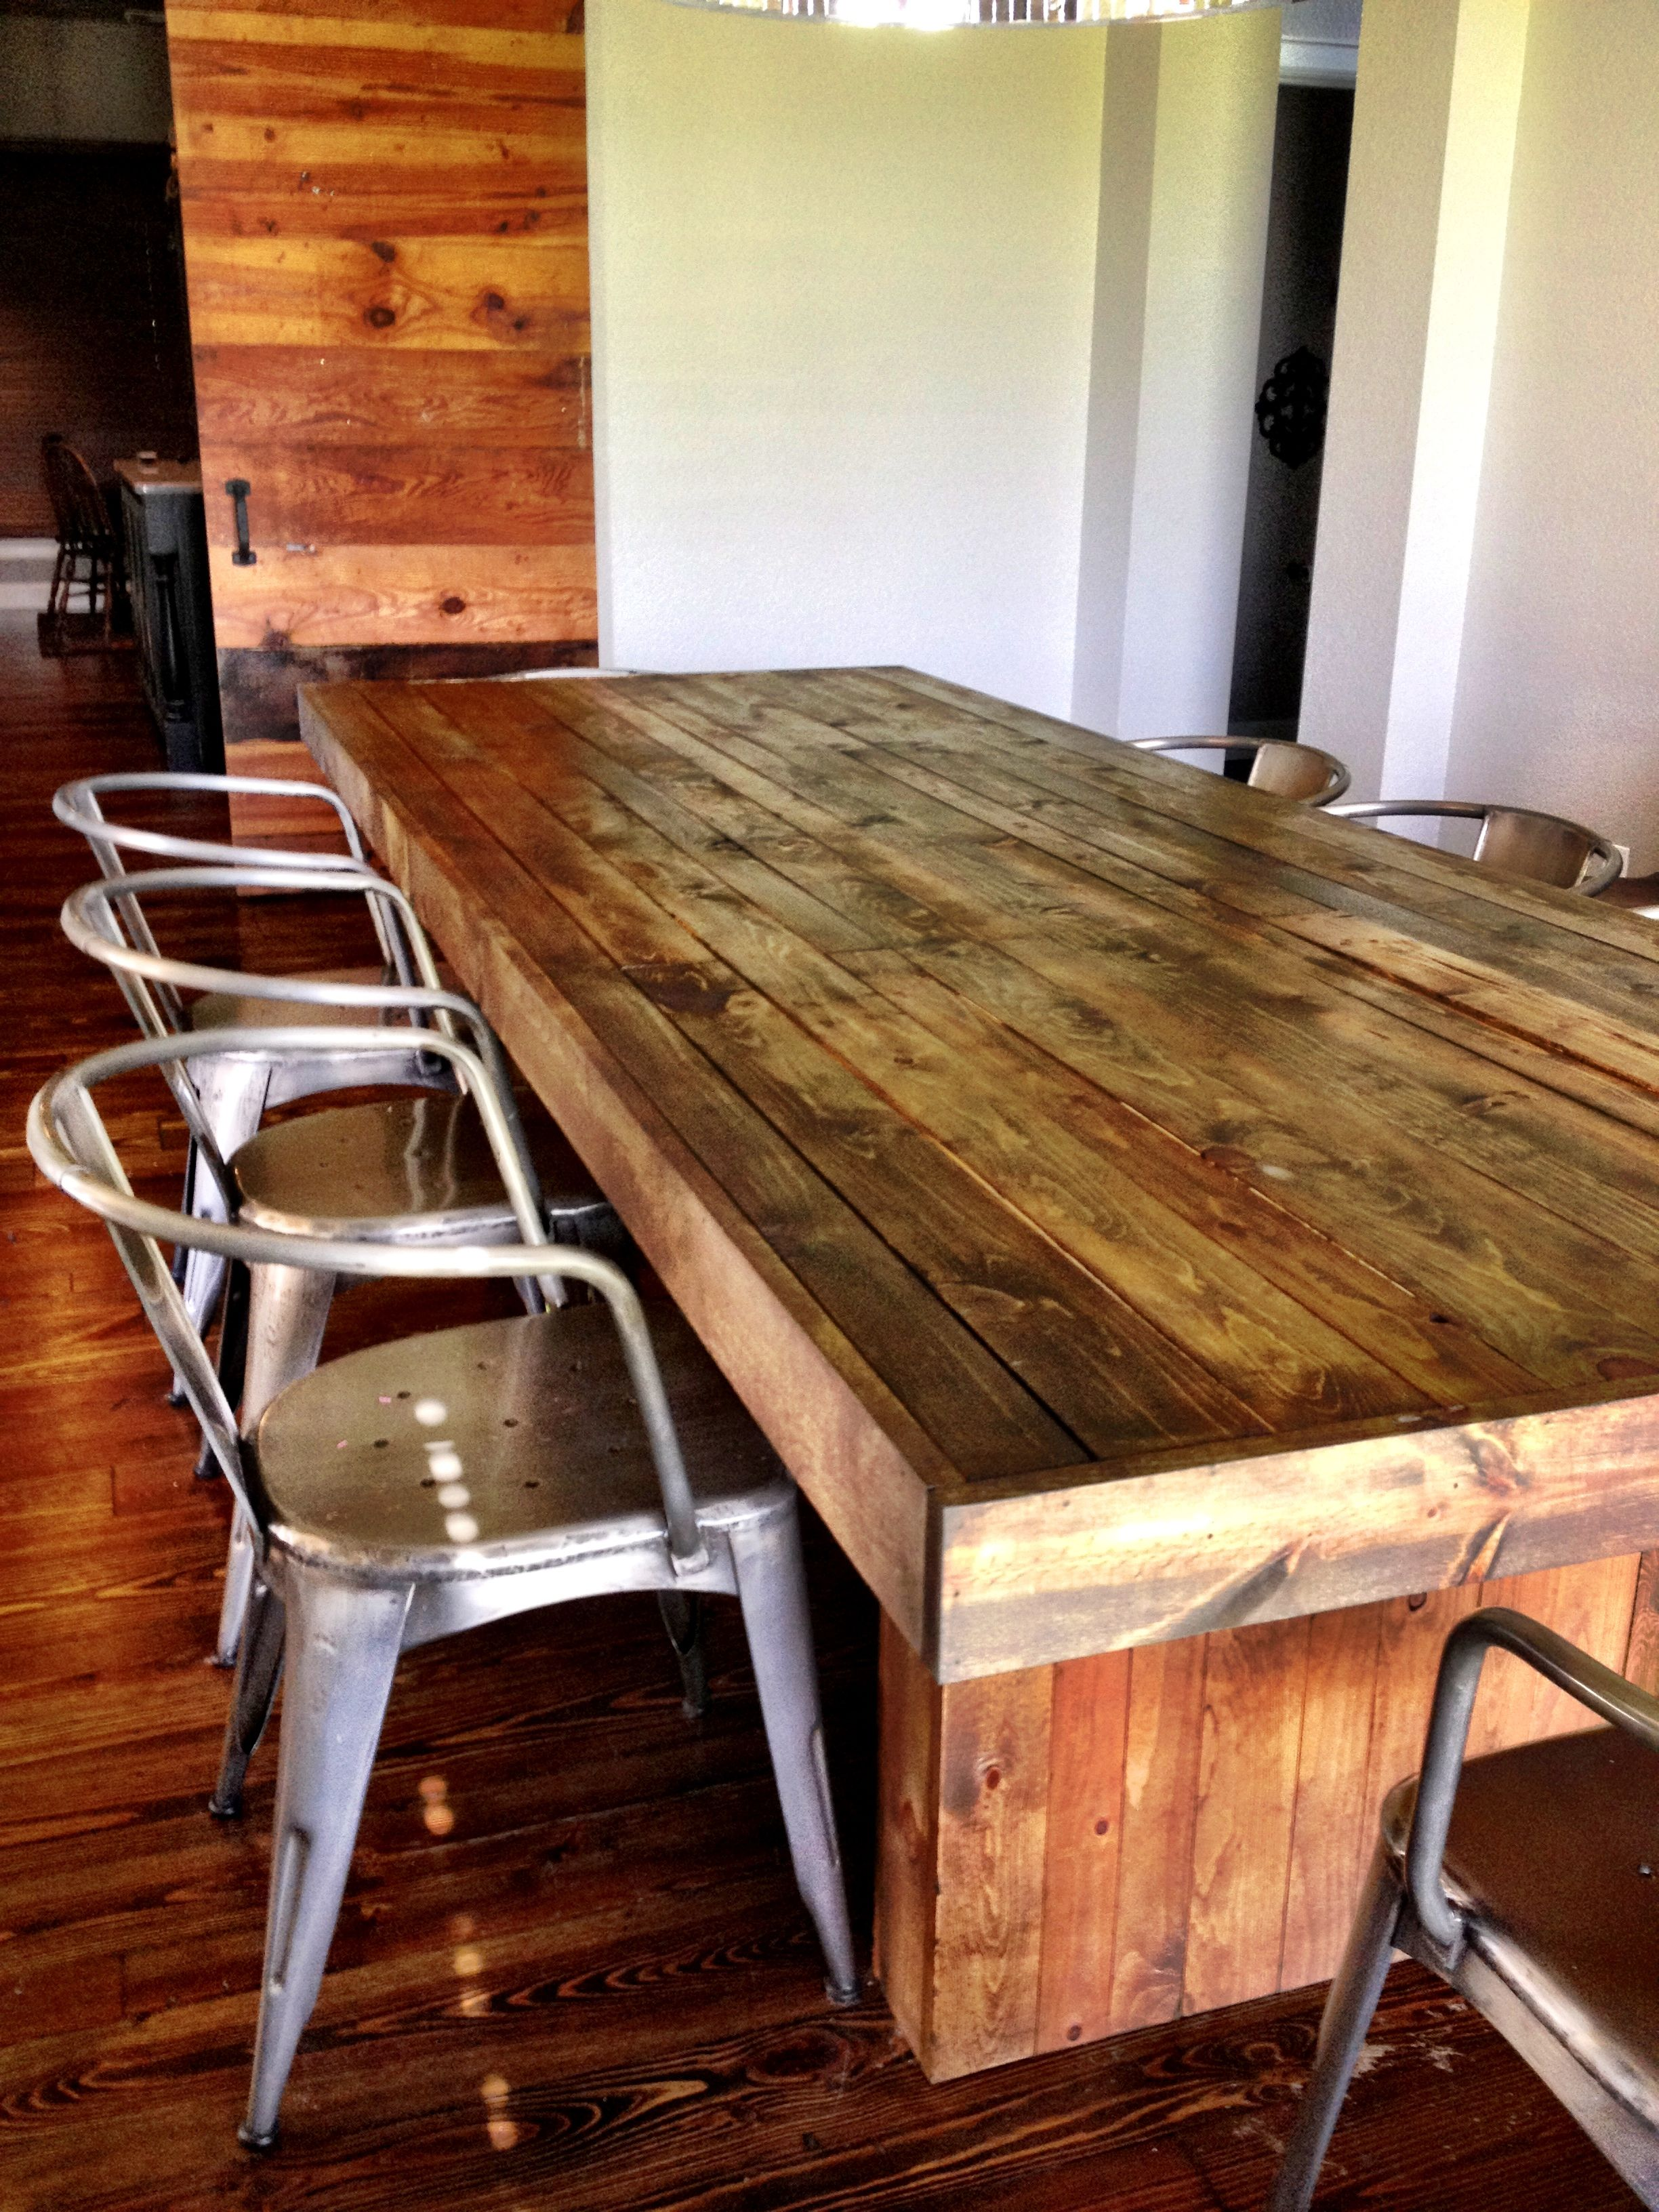 diy reclaimed wood dining table inspired by west elm cost under 300 my pinspired projects. Black Bedroom Furniture Sets. Home Design Ideas